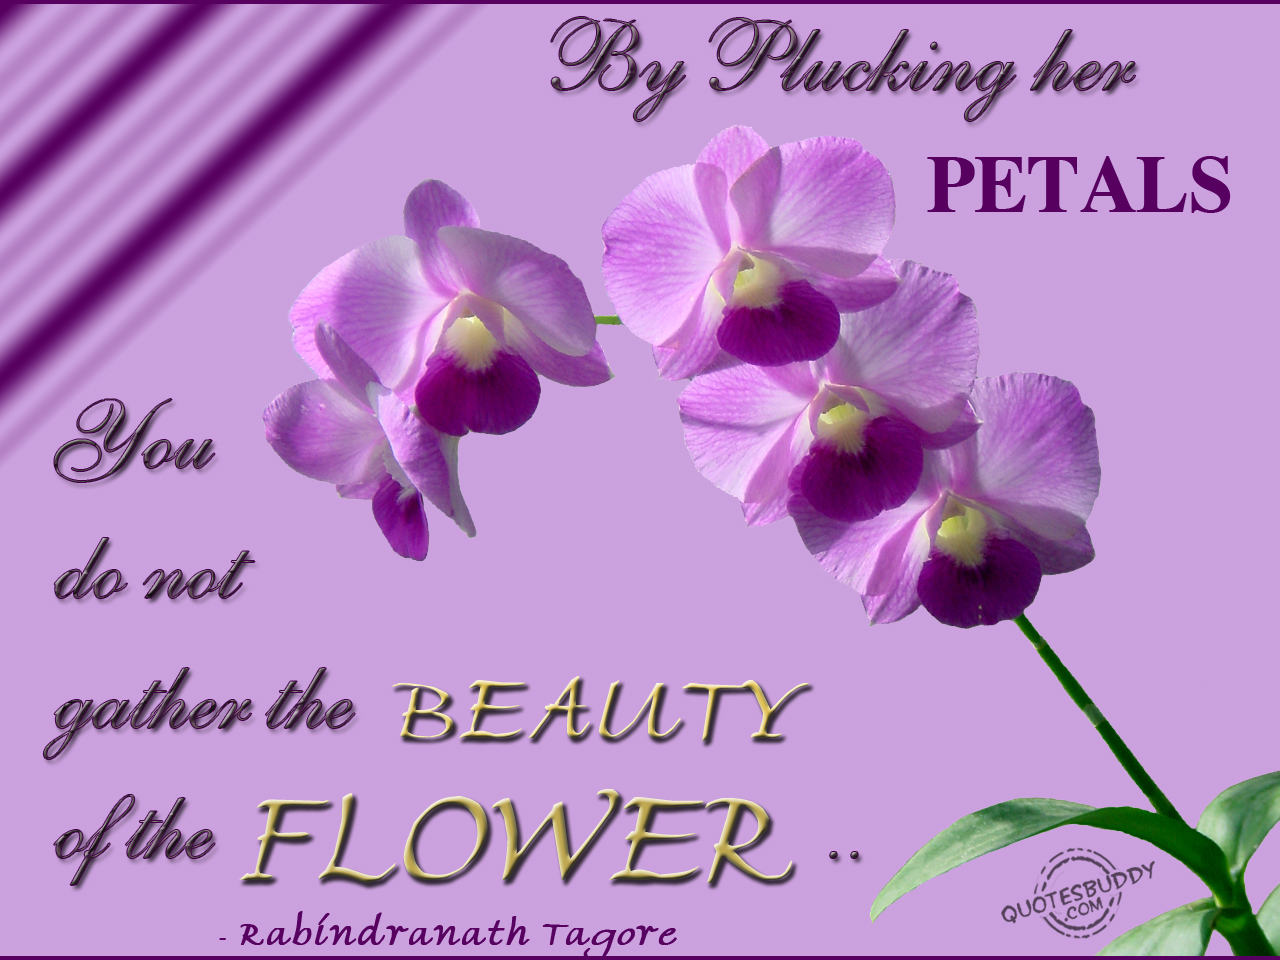 Quotes about flower petals 41 quotes quotes about flower petals izmirmasajfo Choice Image